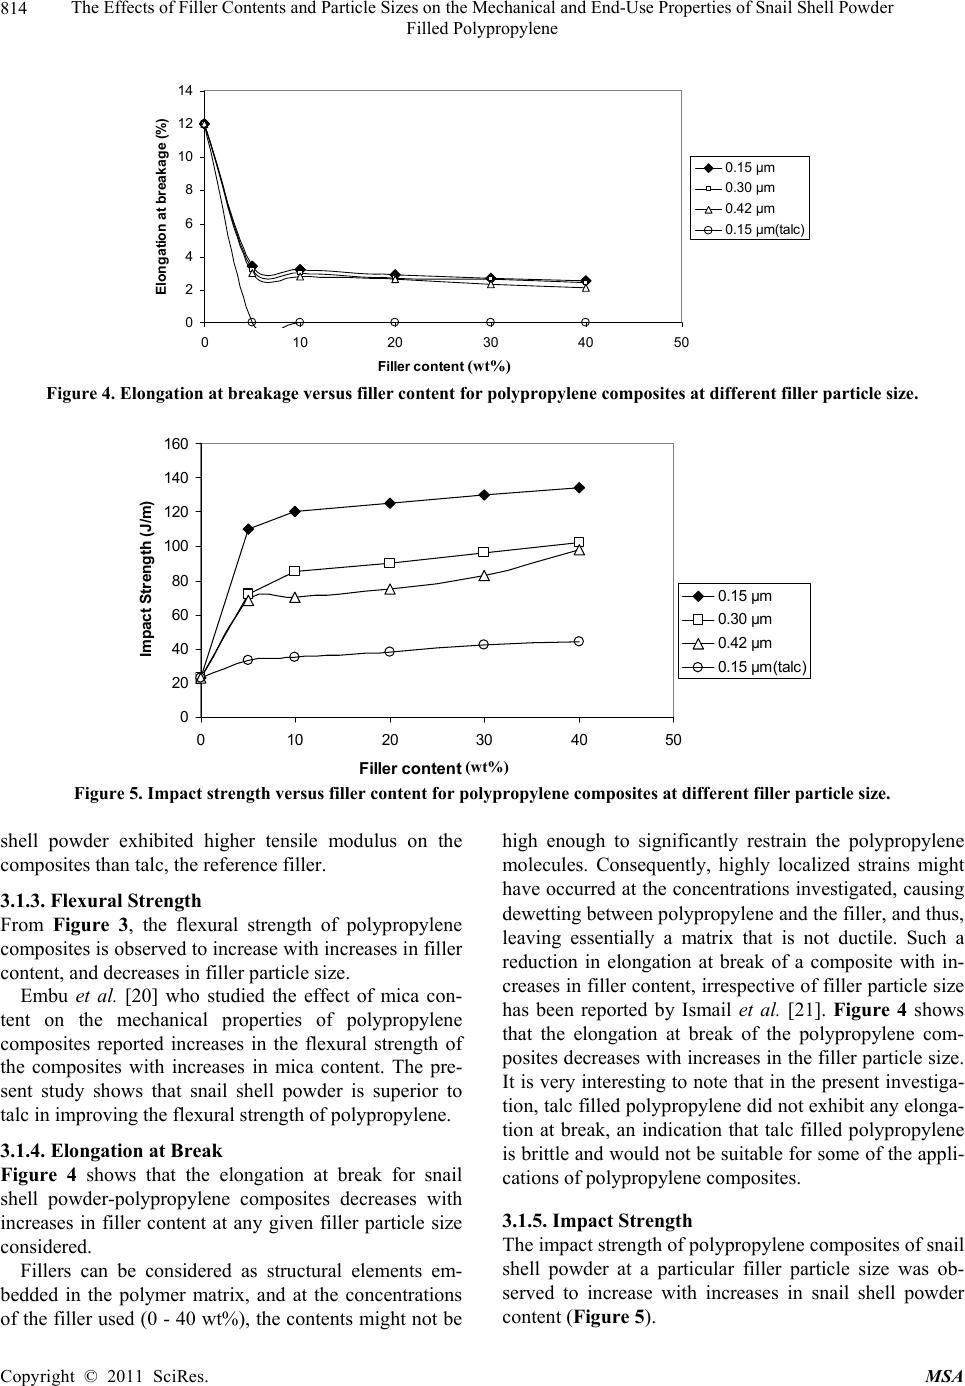 The Effects of Filler Contents and Particle Sizes on the